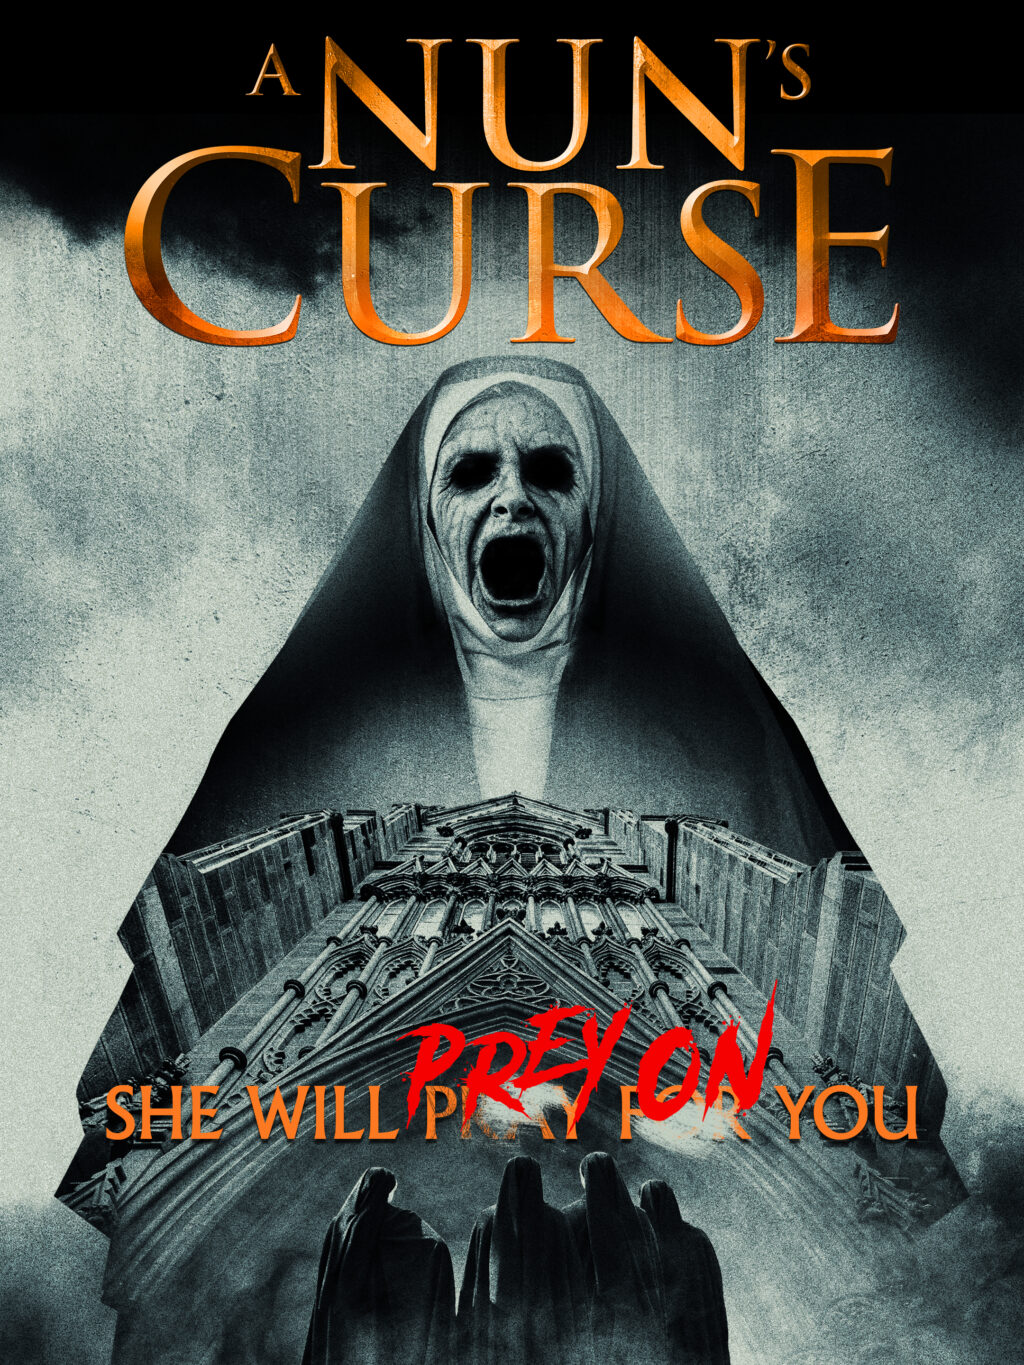 NunsCurse KeyArt 3x4 2160x2880 1024x1365 - Don't Mess with Sister Monday! Trailer for A NUN'S CURSE Starring Felissa Rose